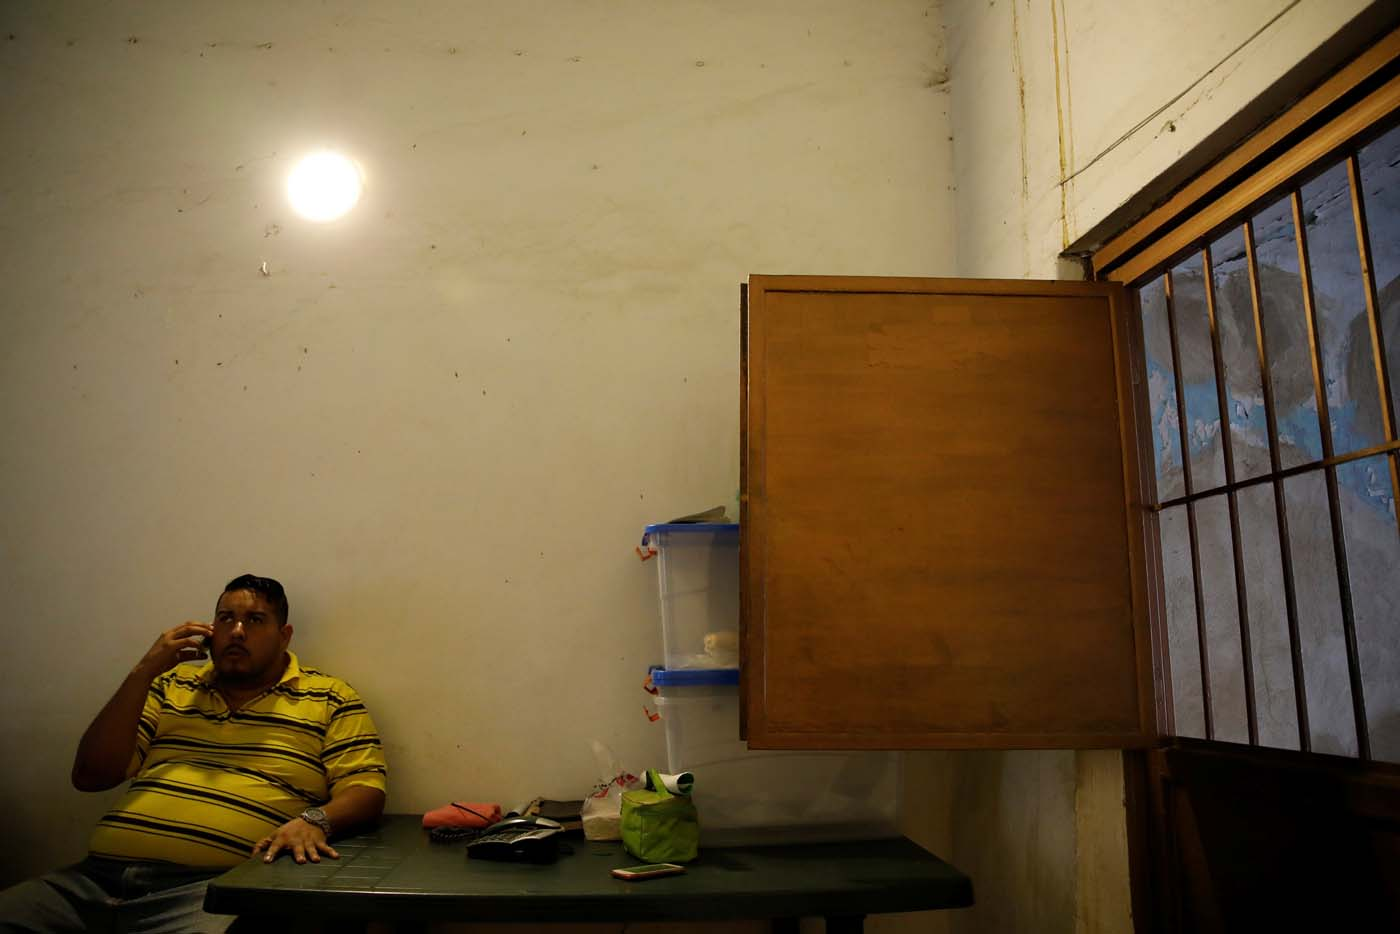 Medical equipment repairman Leandro Colmenares speaks by phone at his house in Caracas, Venezuela October 3, 2017. Picture taken October 3, 2017. REUTERS/Carlos Garcia Rawlins